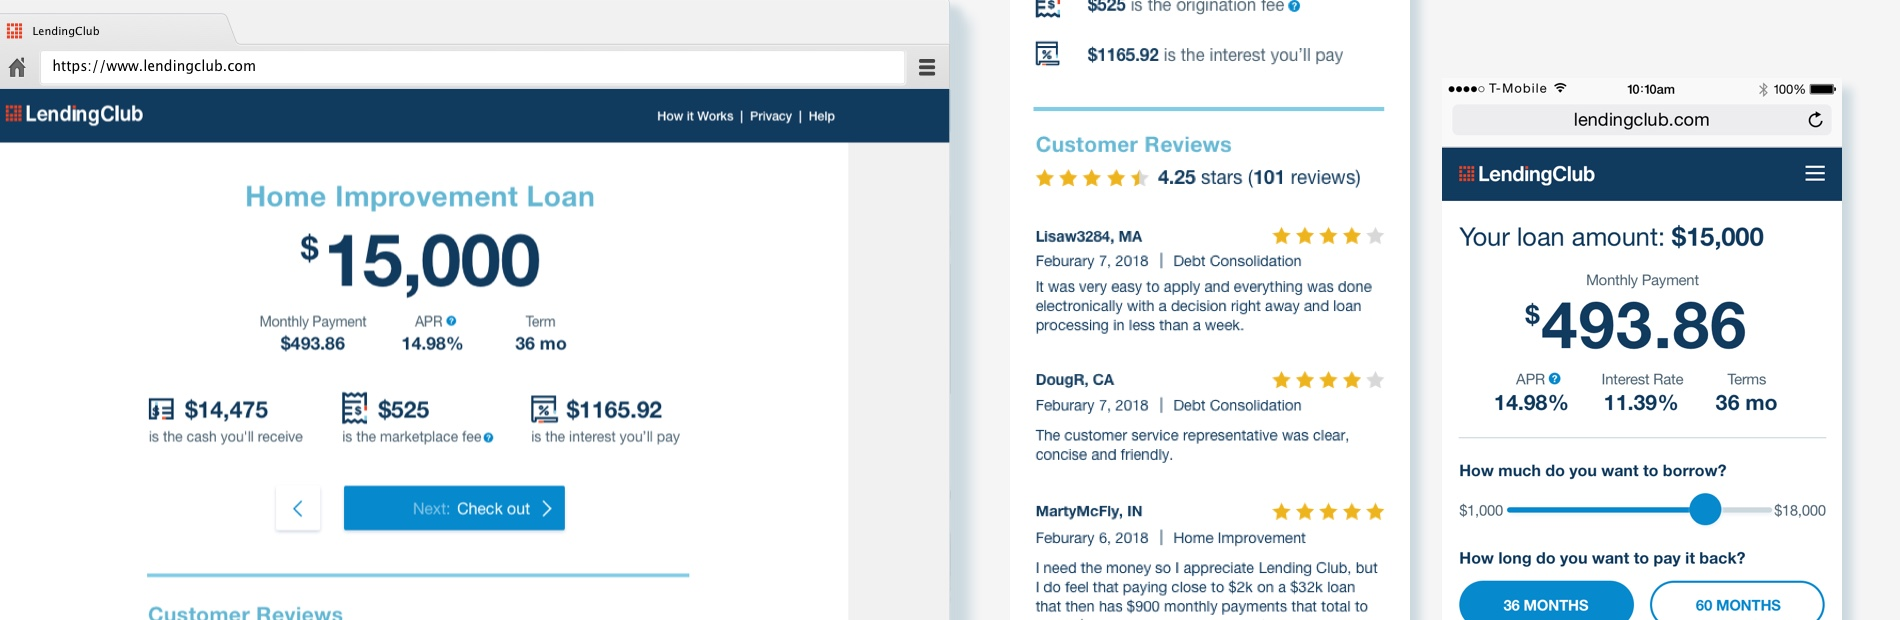 LendingClub Offer Page Redesign - Liz Chang